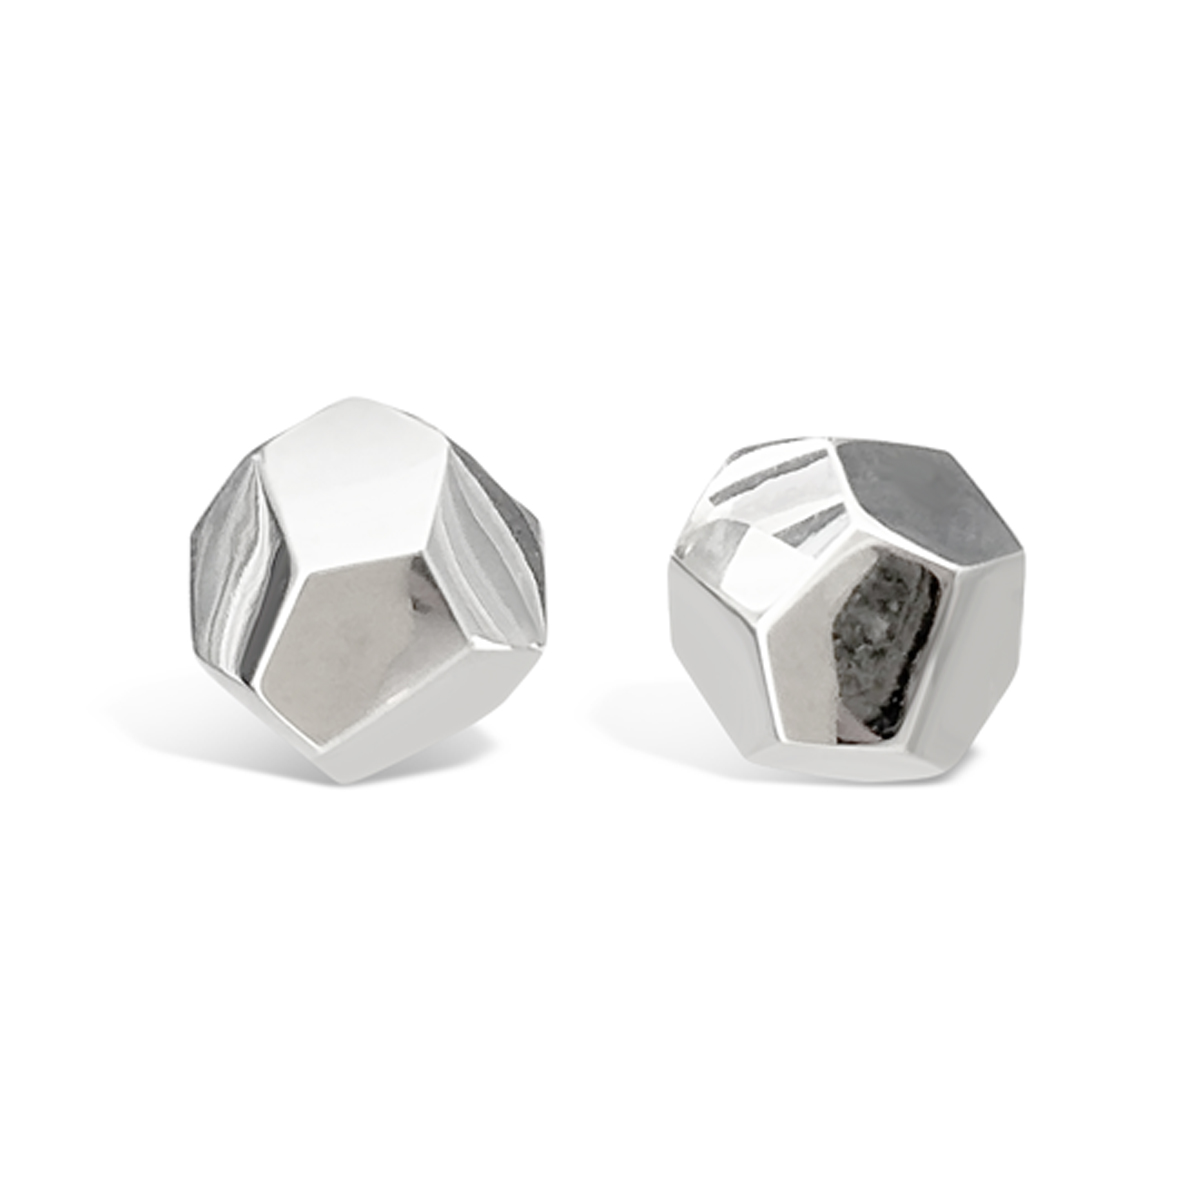 Decca Earrings Silver 8mm